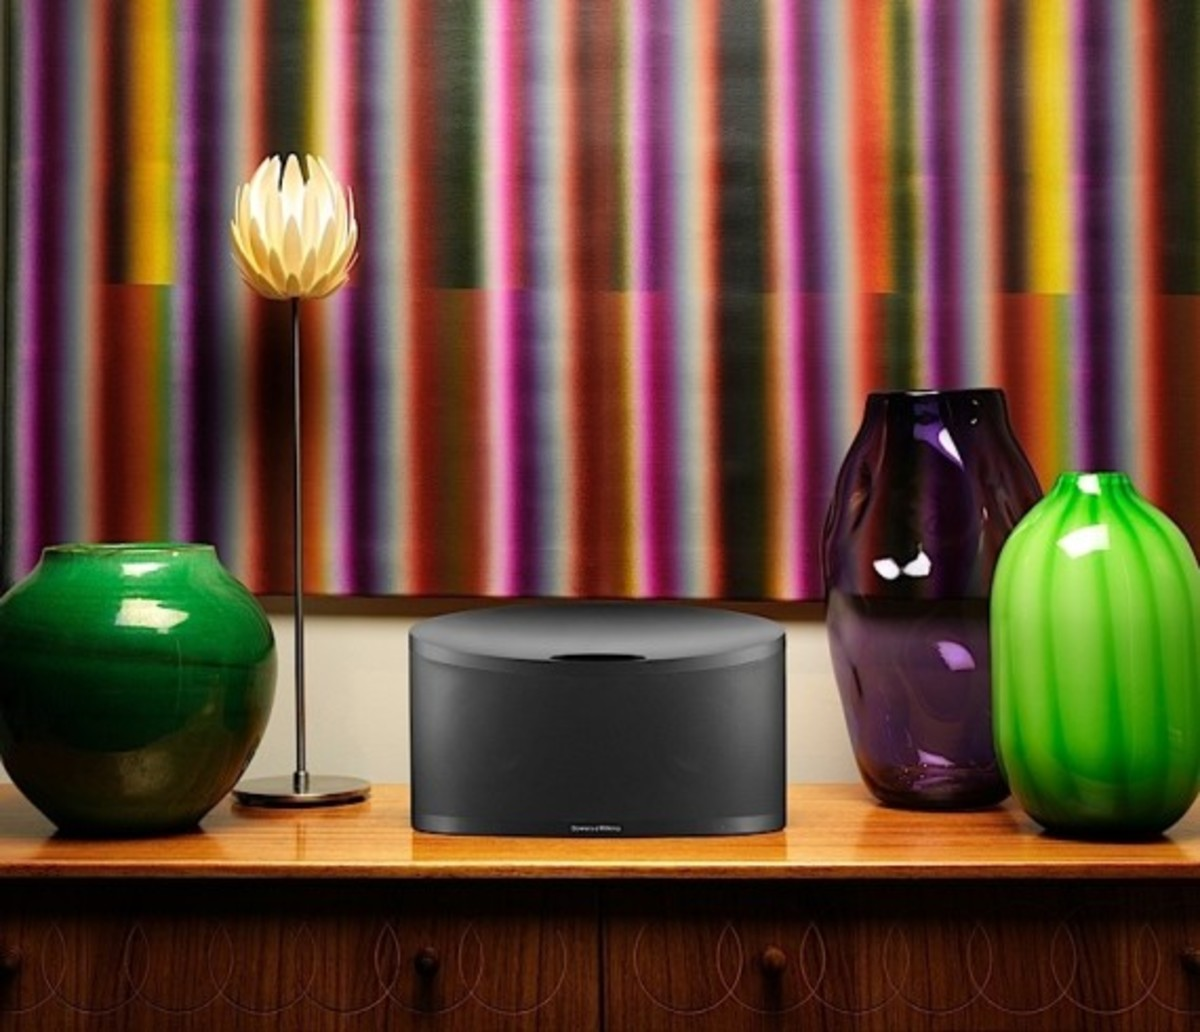 bowers-and-wilkins-z2-wireless-speakers-17